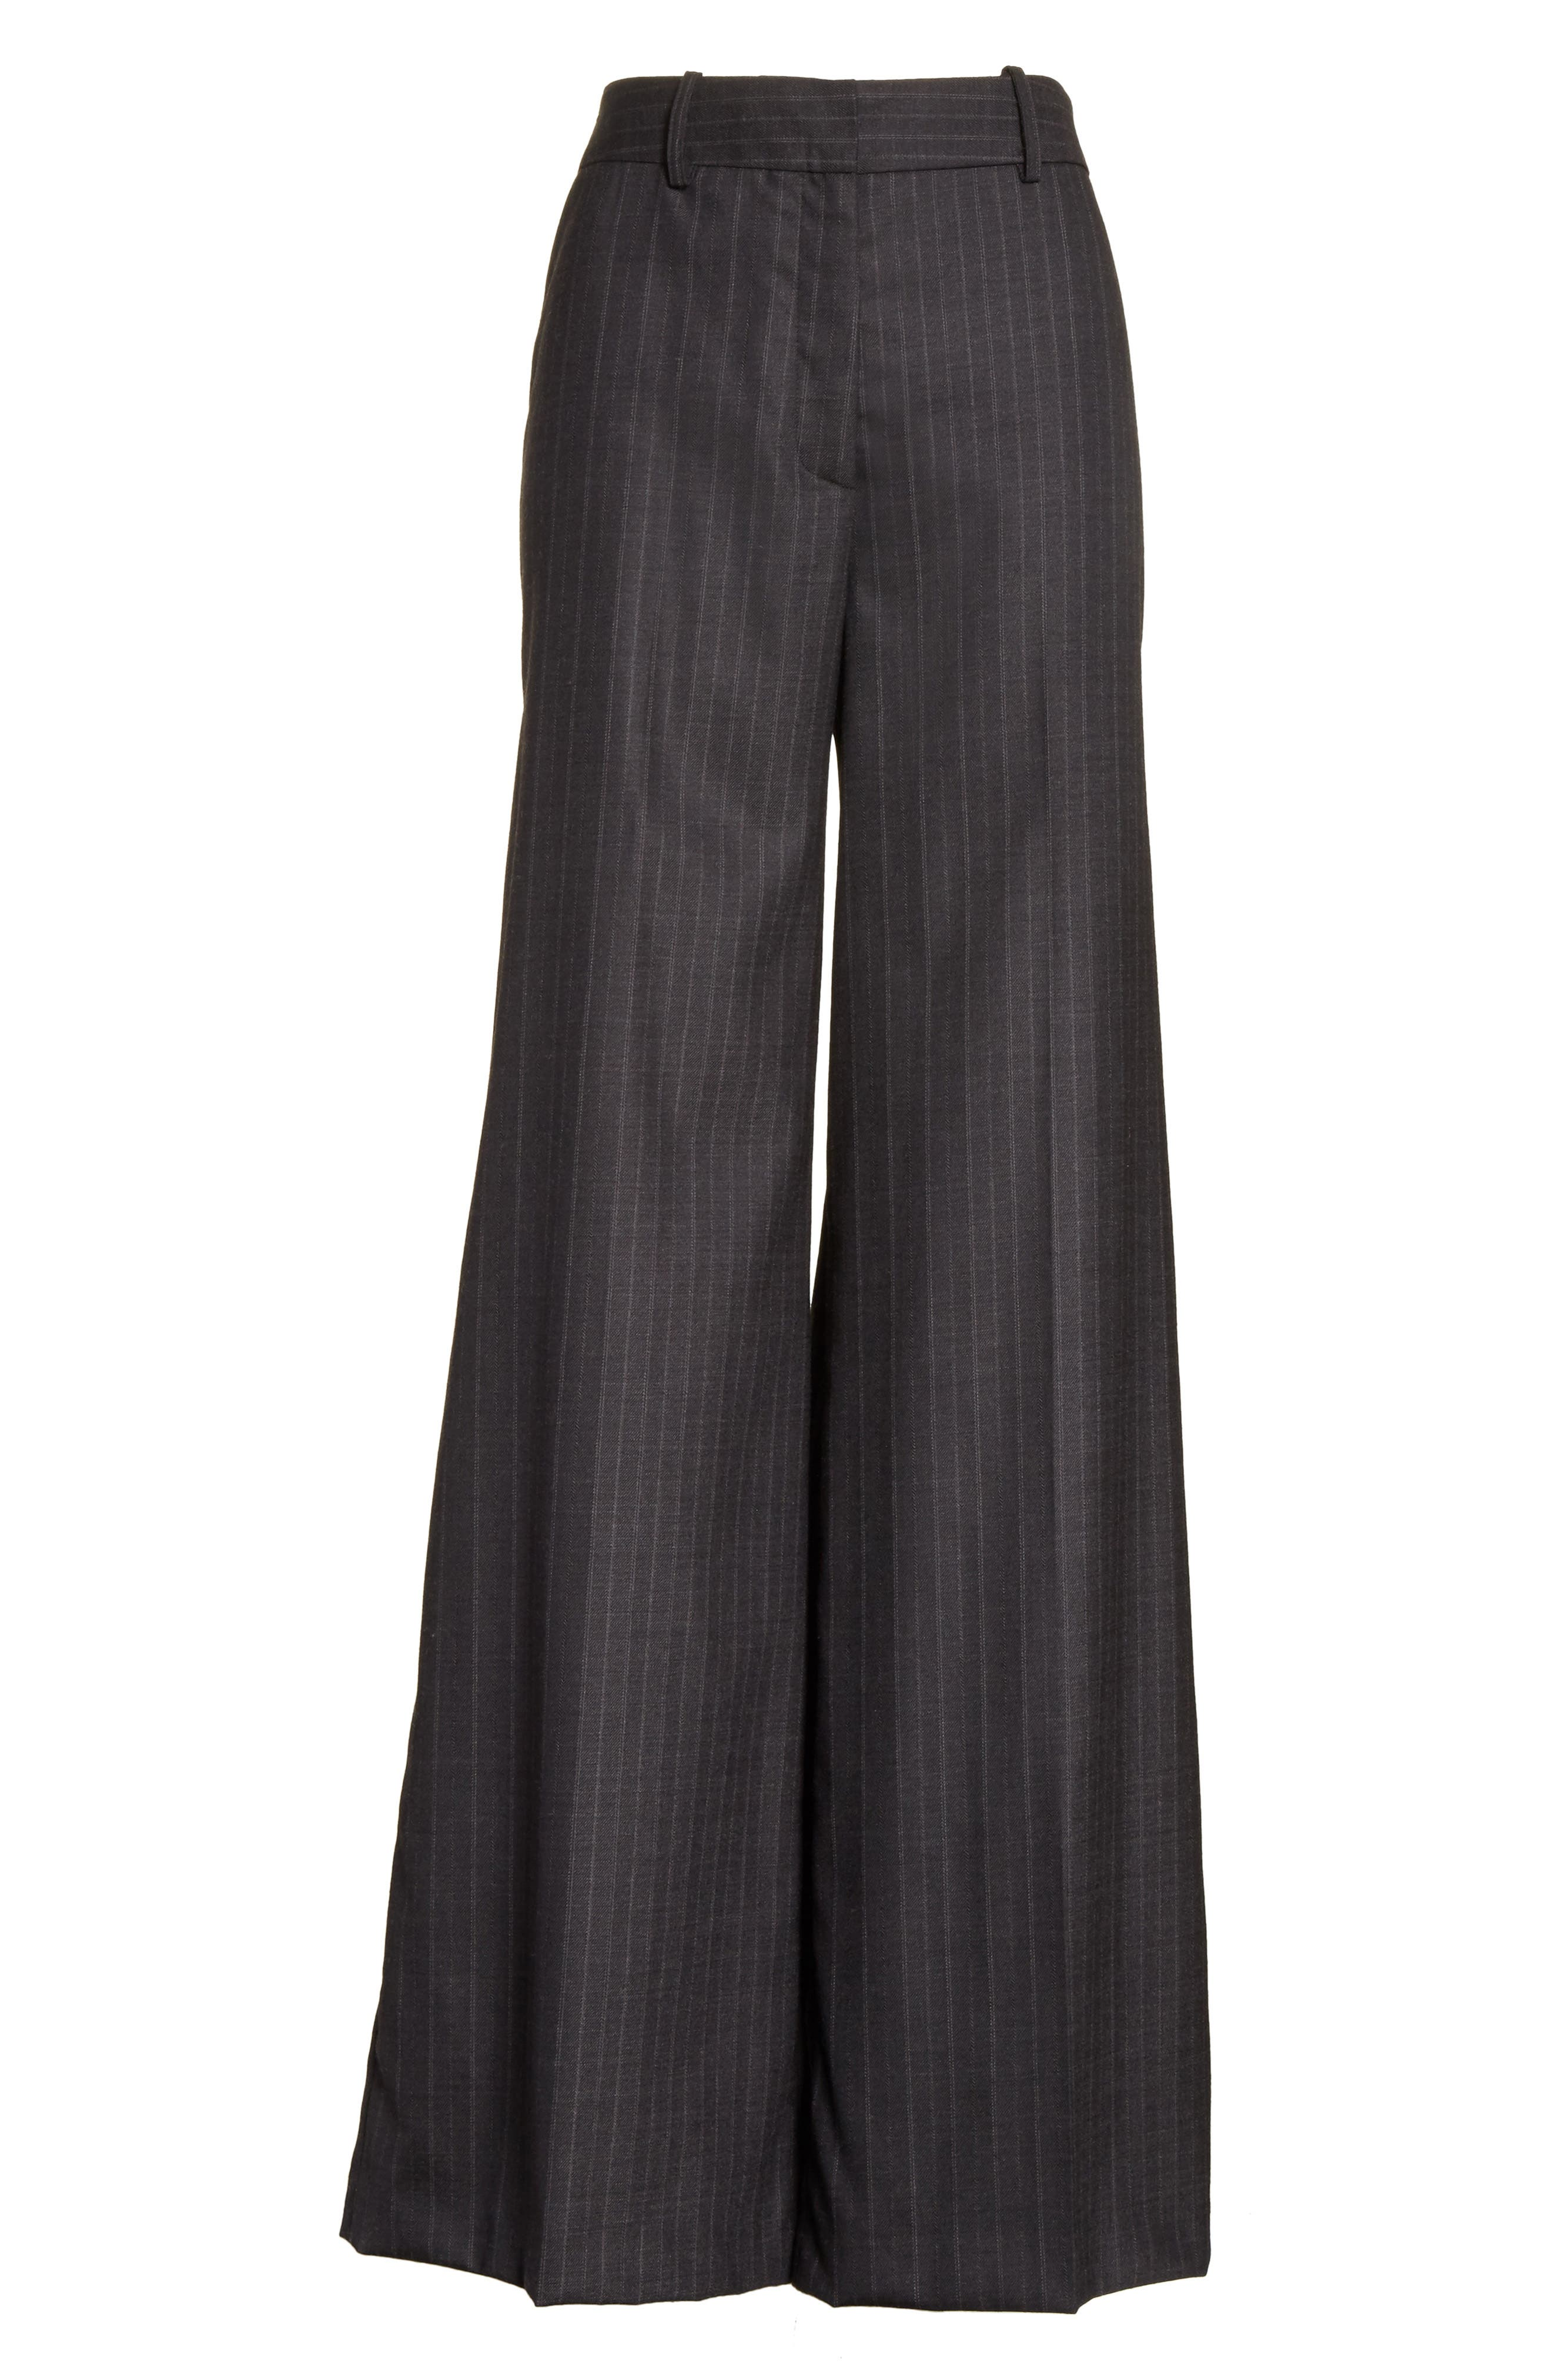 Sia Pinstripe Italian Stretch Wool Trousers,                             Alternate thumbnail 6, color,